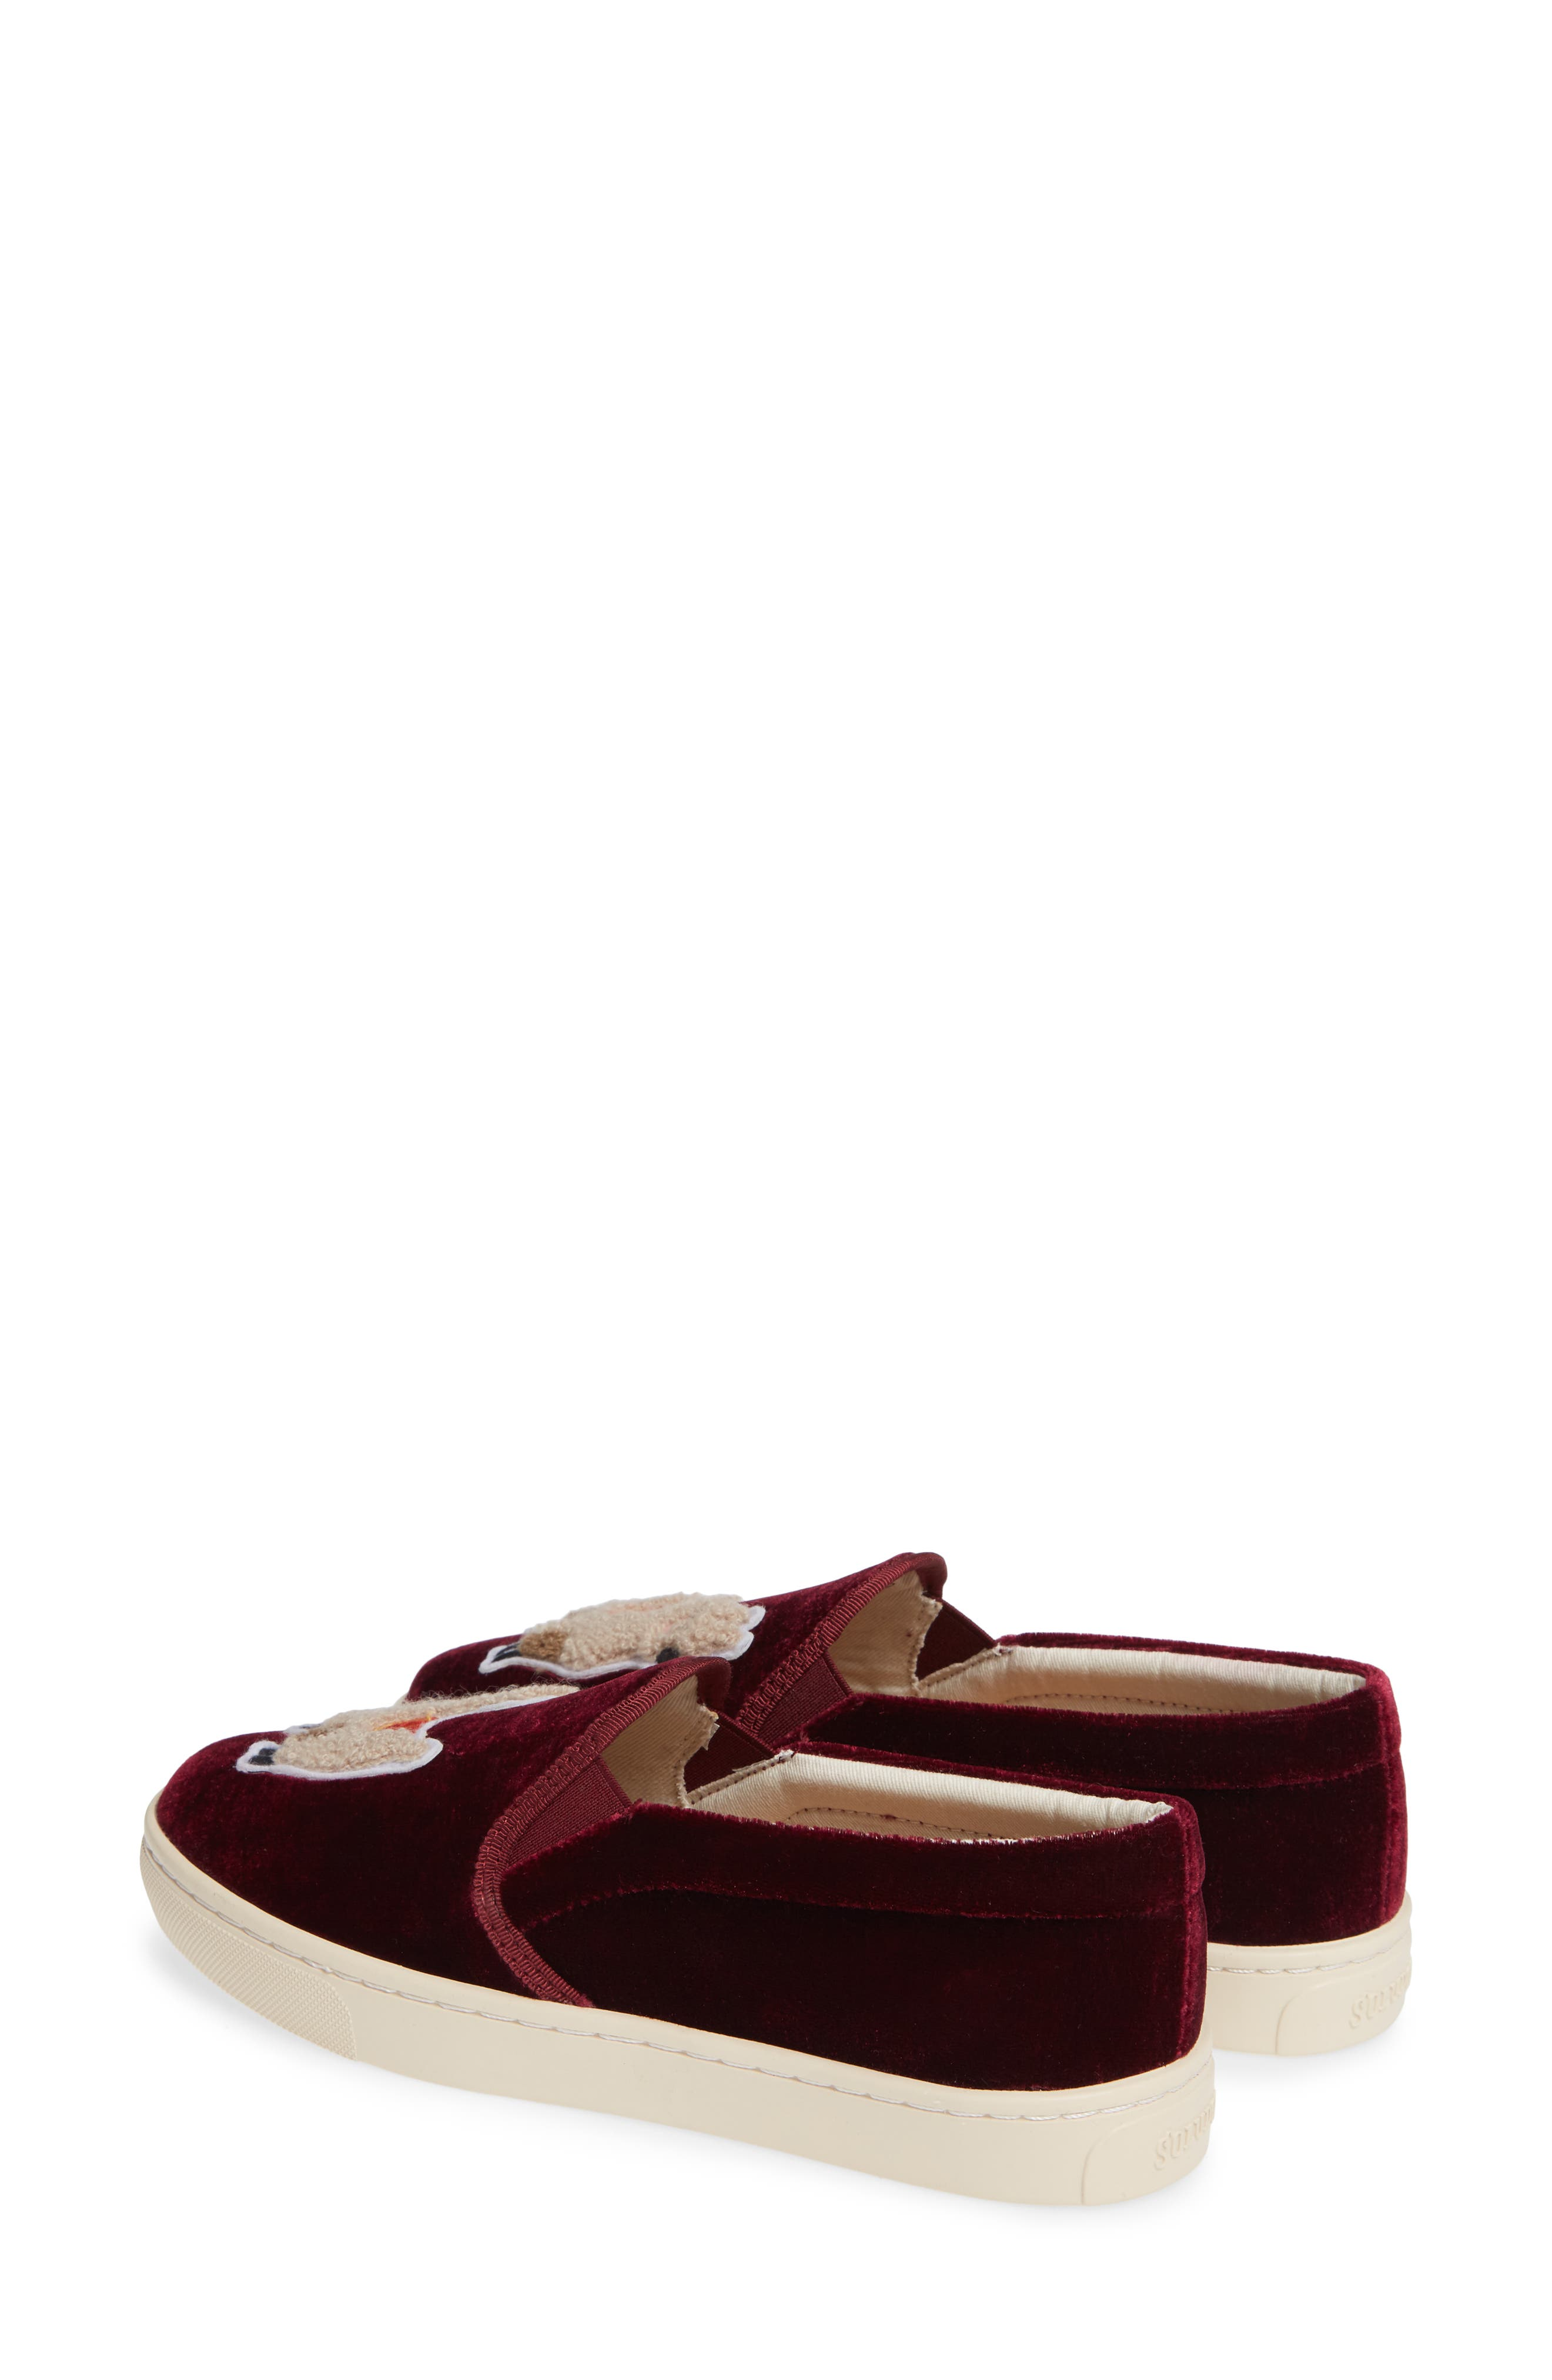 Velvet Sneaker,                             Alternate thumbnail 2, color,                             931